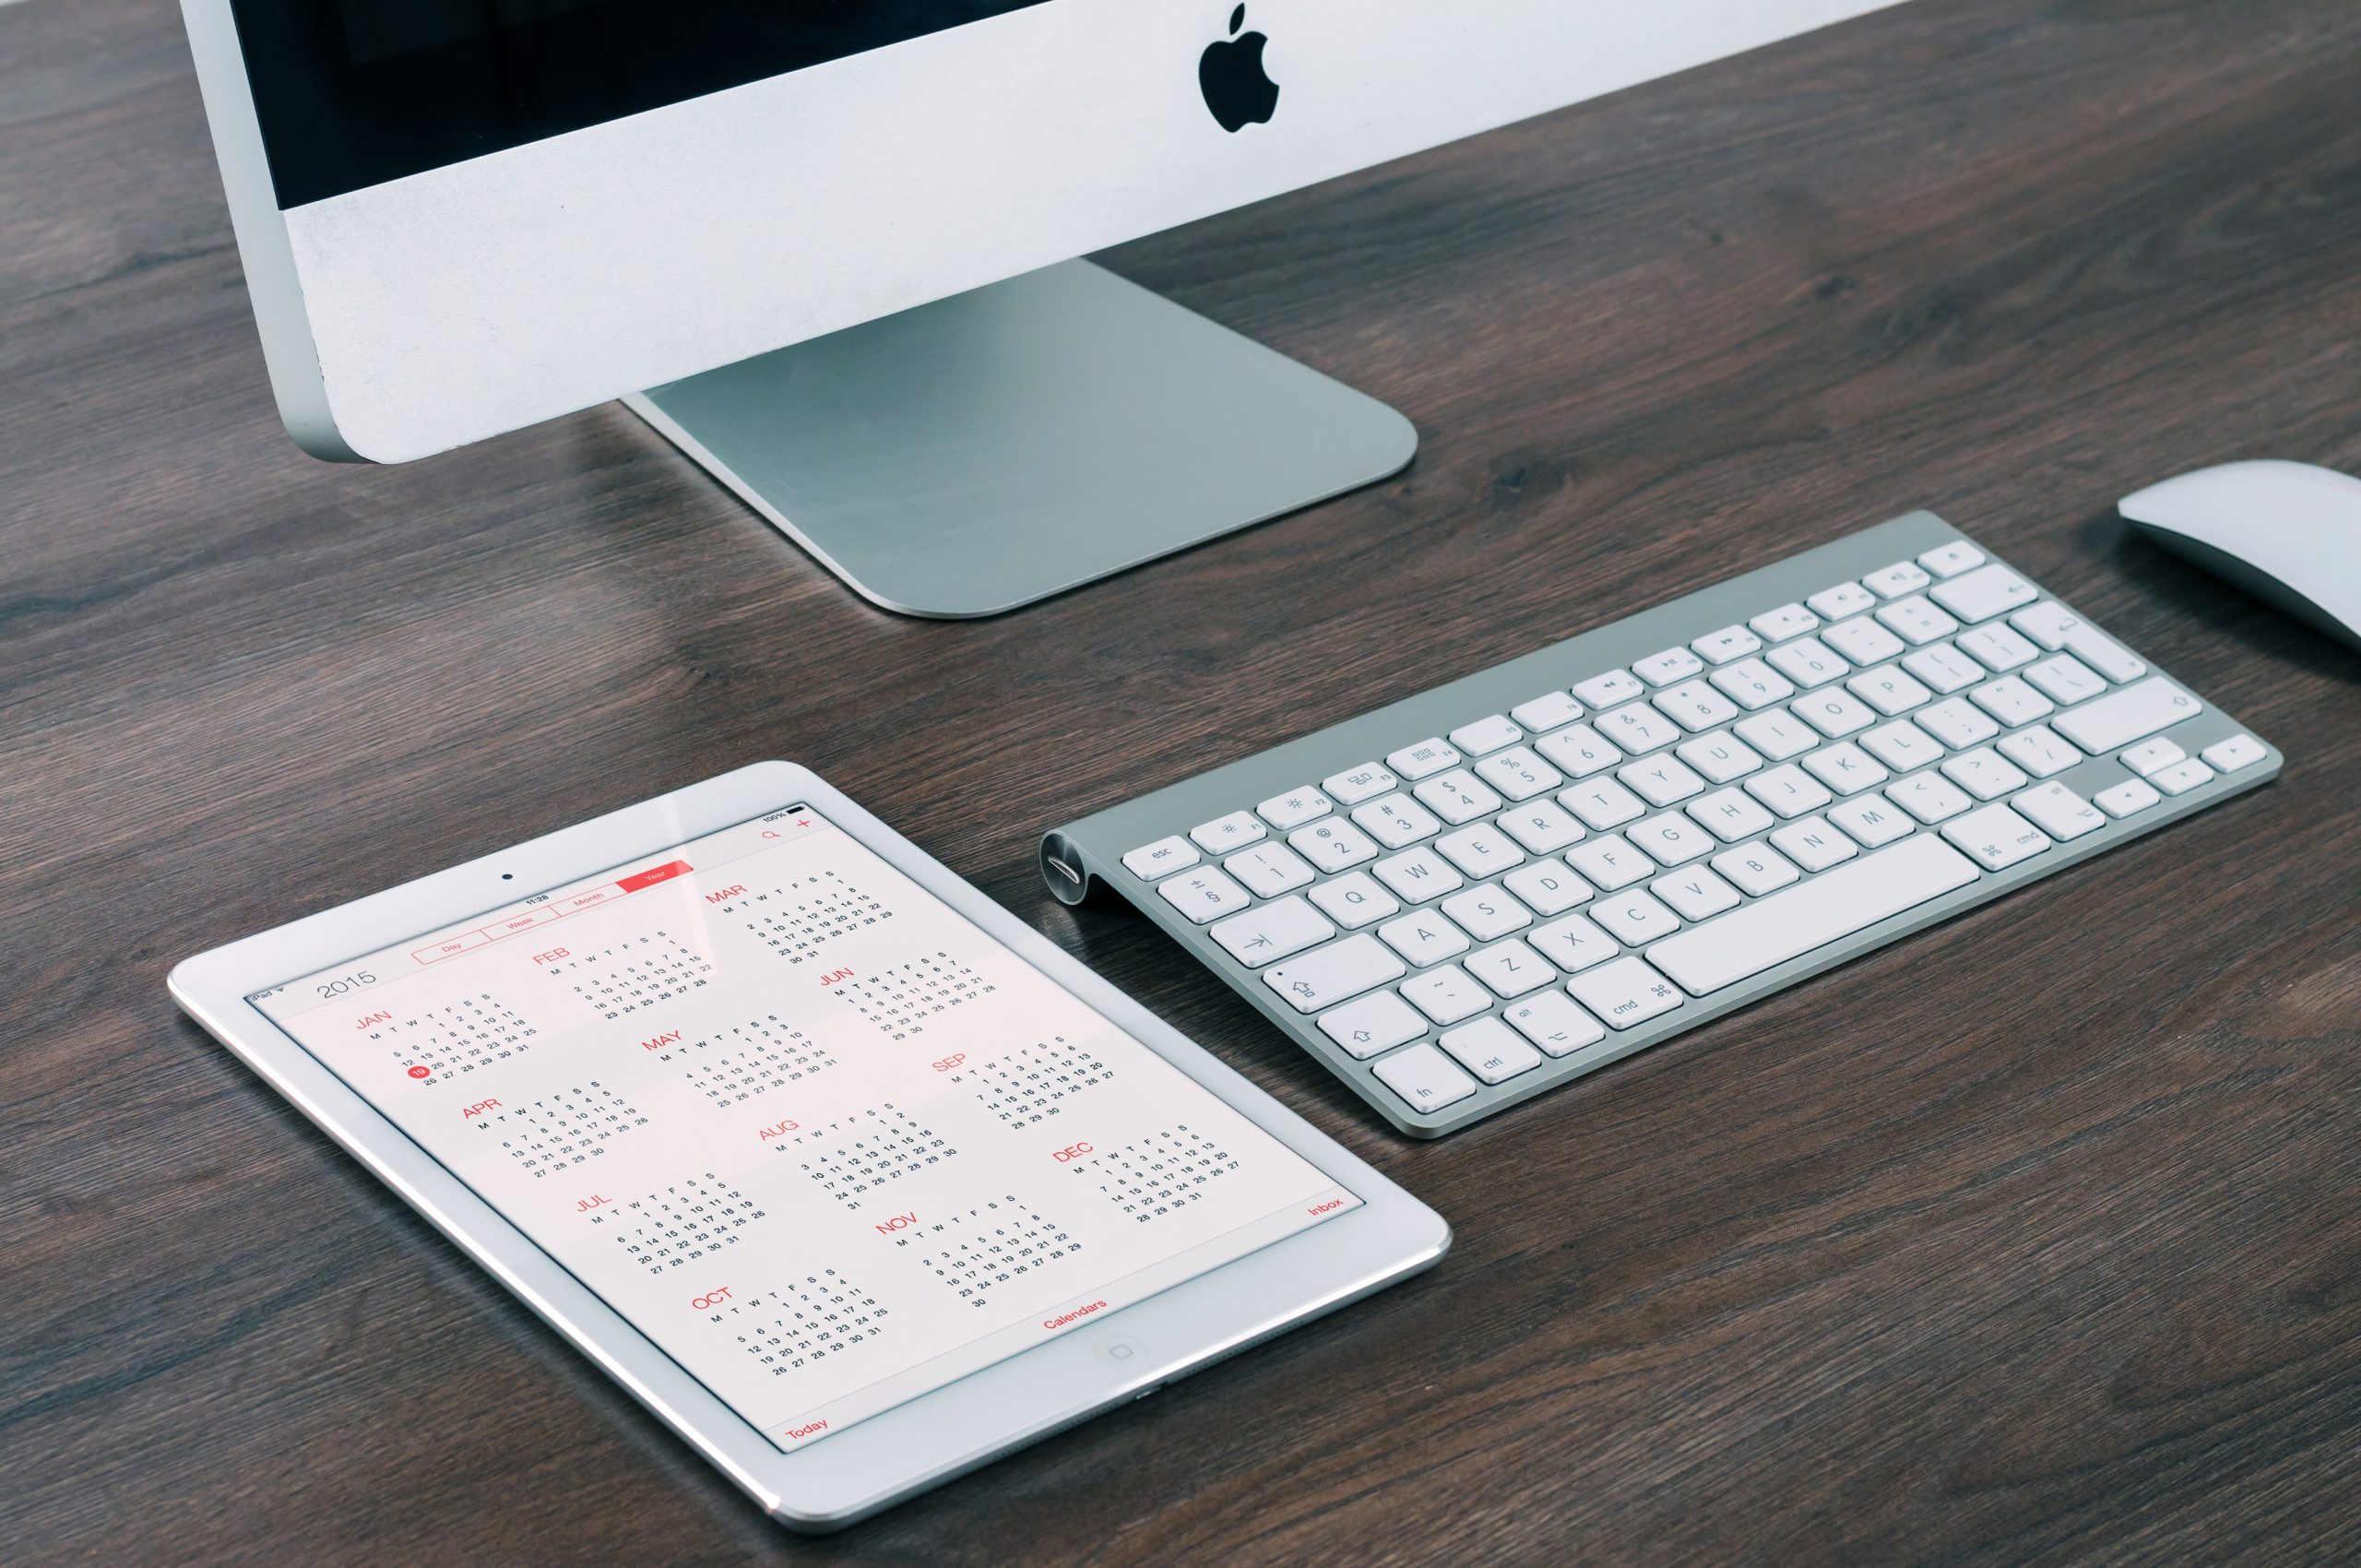 Calendar on iPad and Mac Desktop